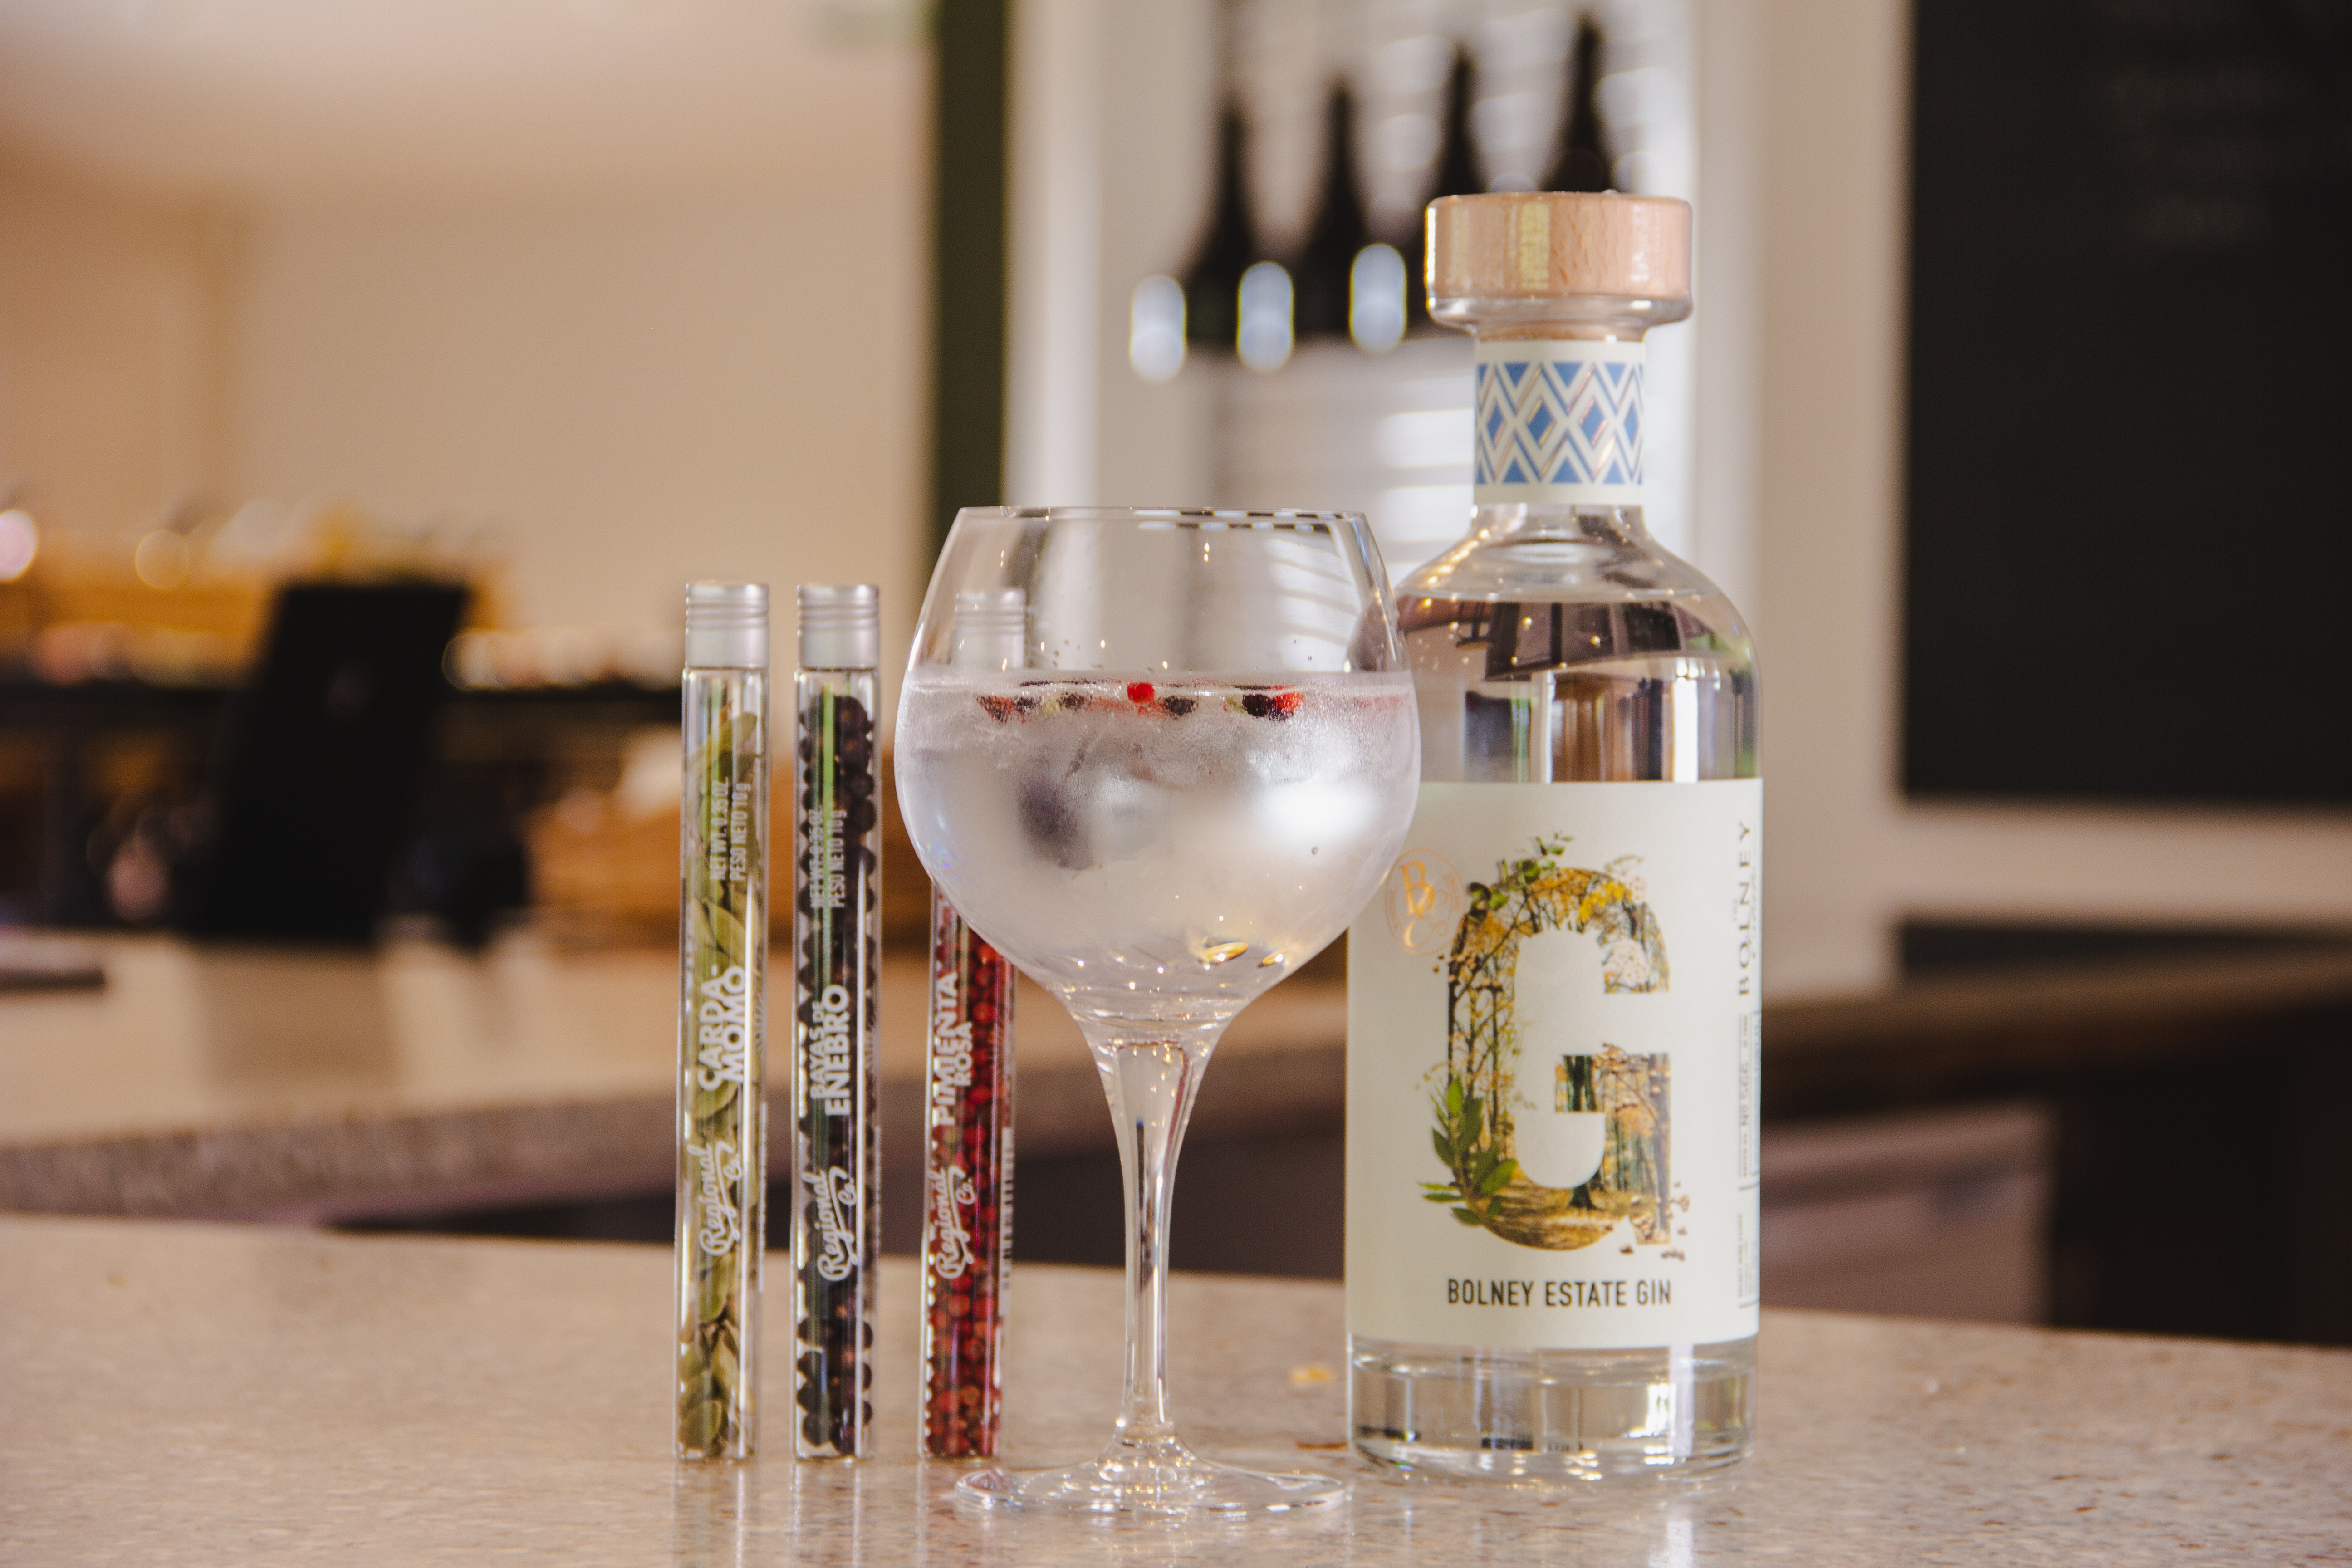 Bolney-Perfec-Serve-Gin-Kit_2